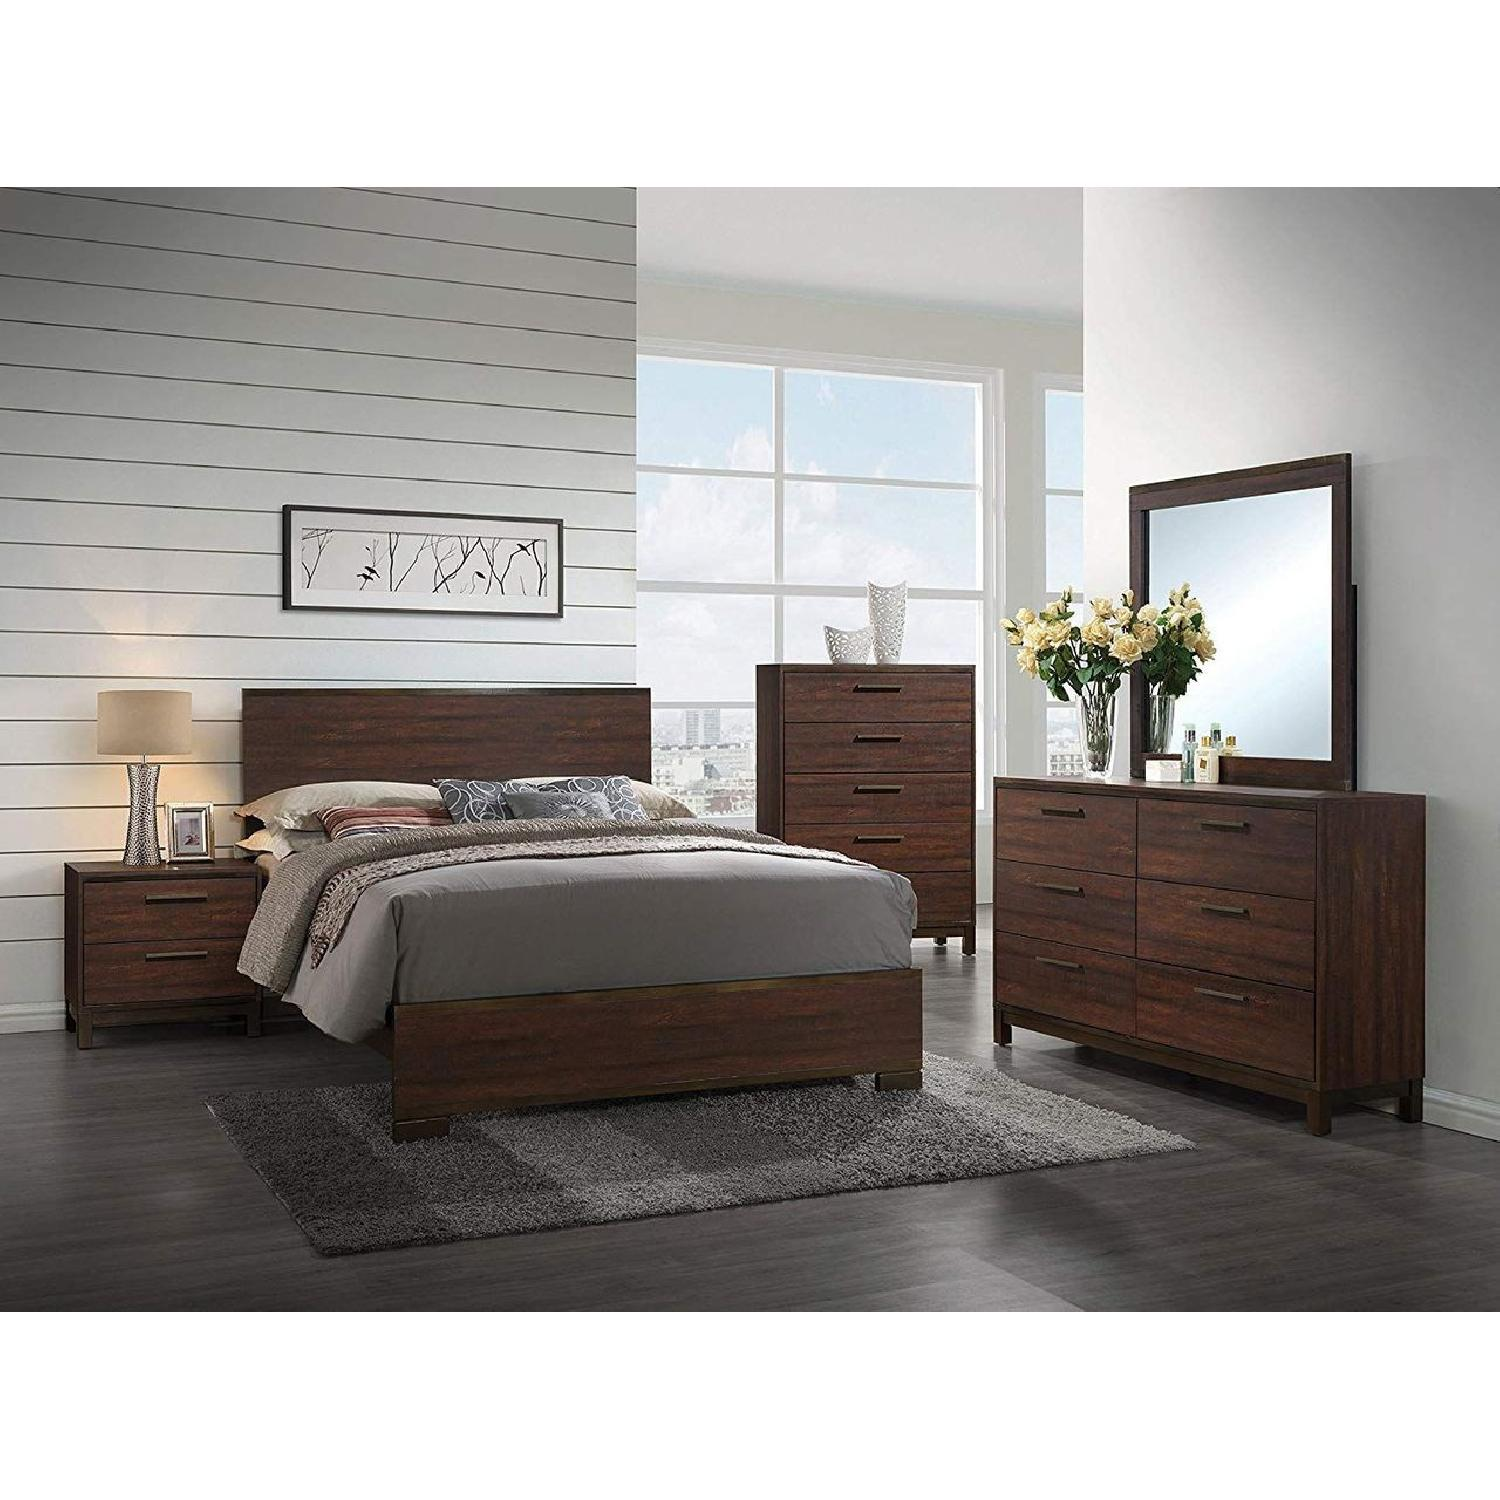 Modern 2-Drawer Nightstand in Rustic Tobacco Finish - image-2